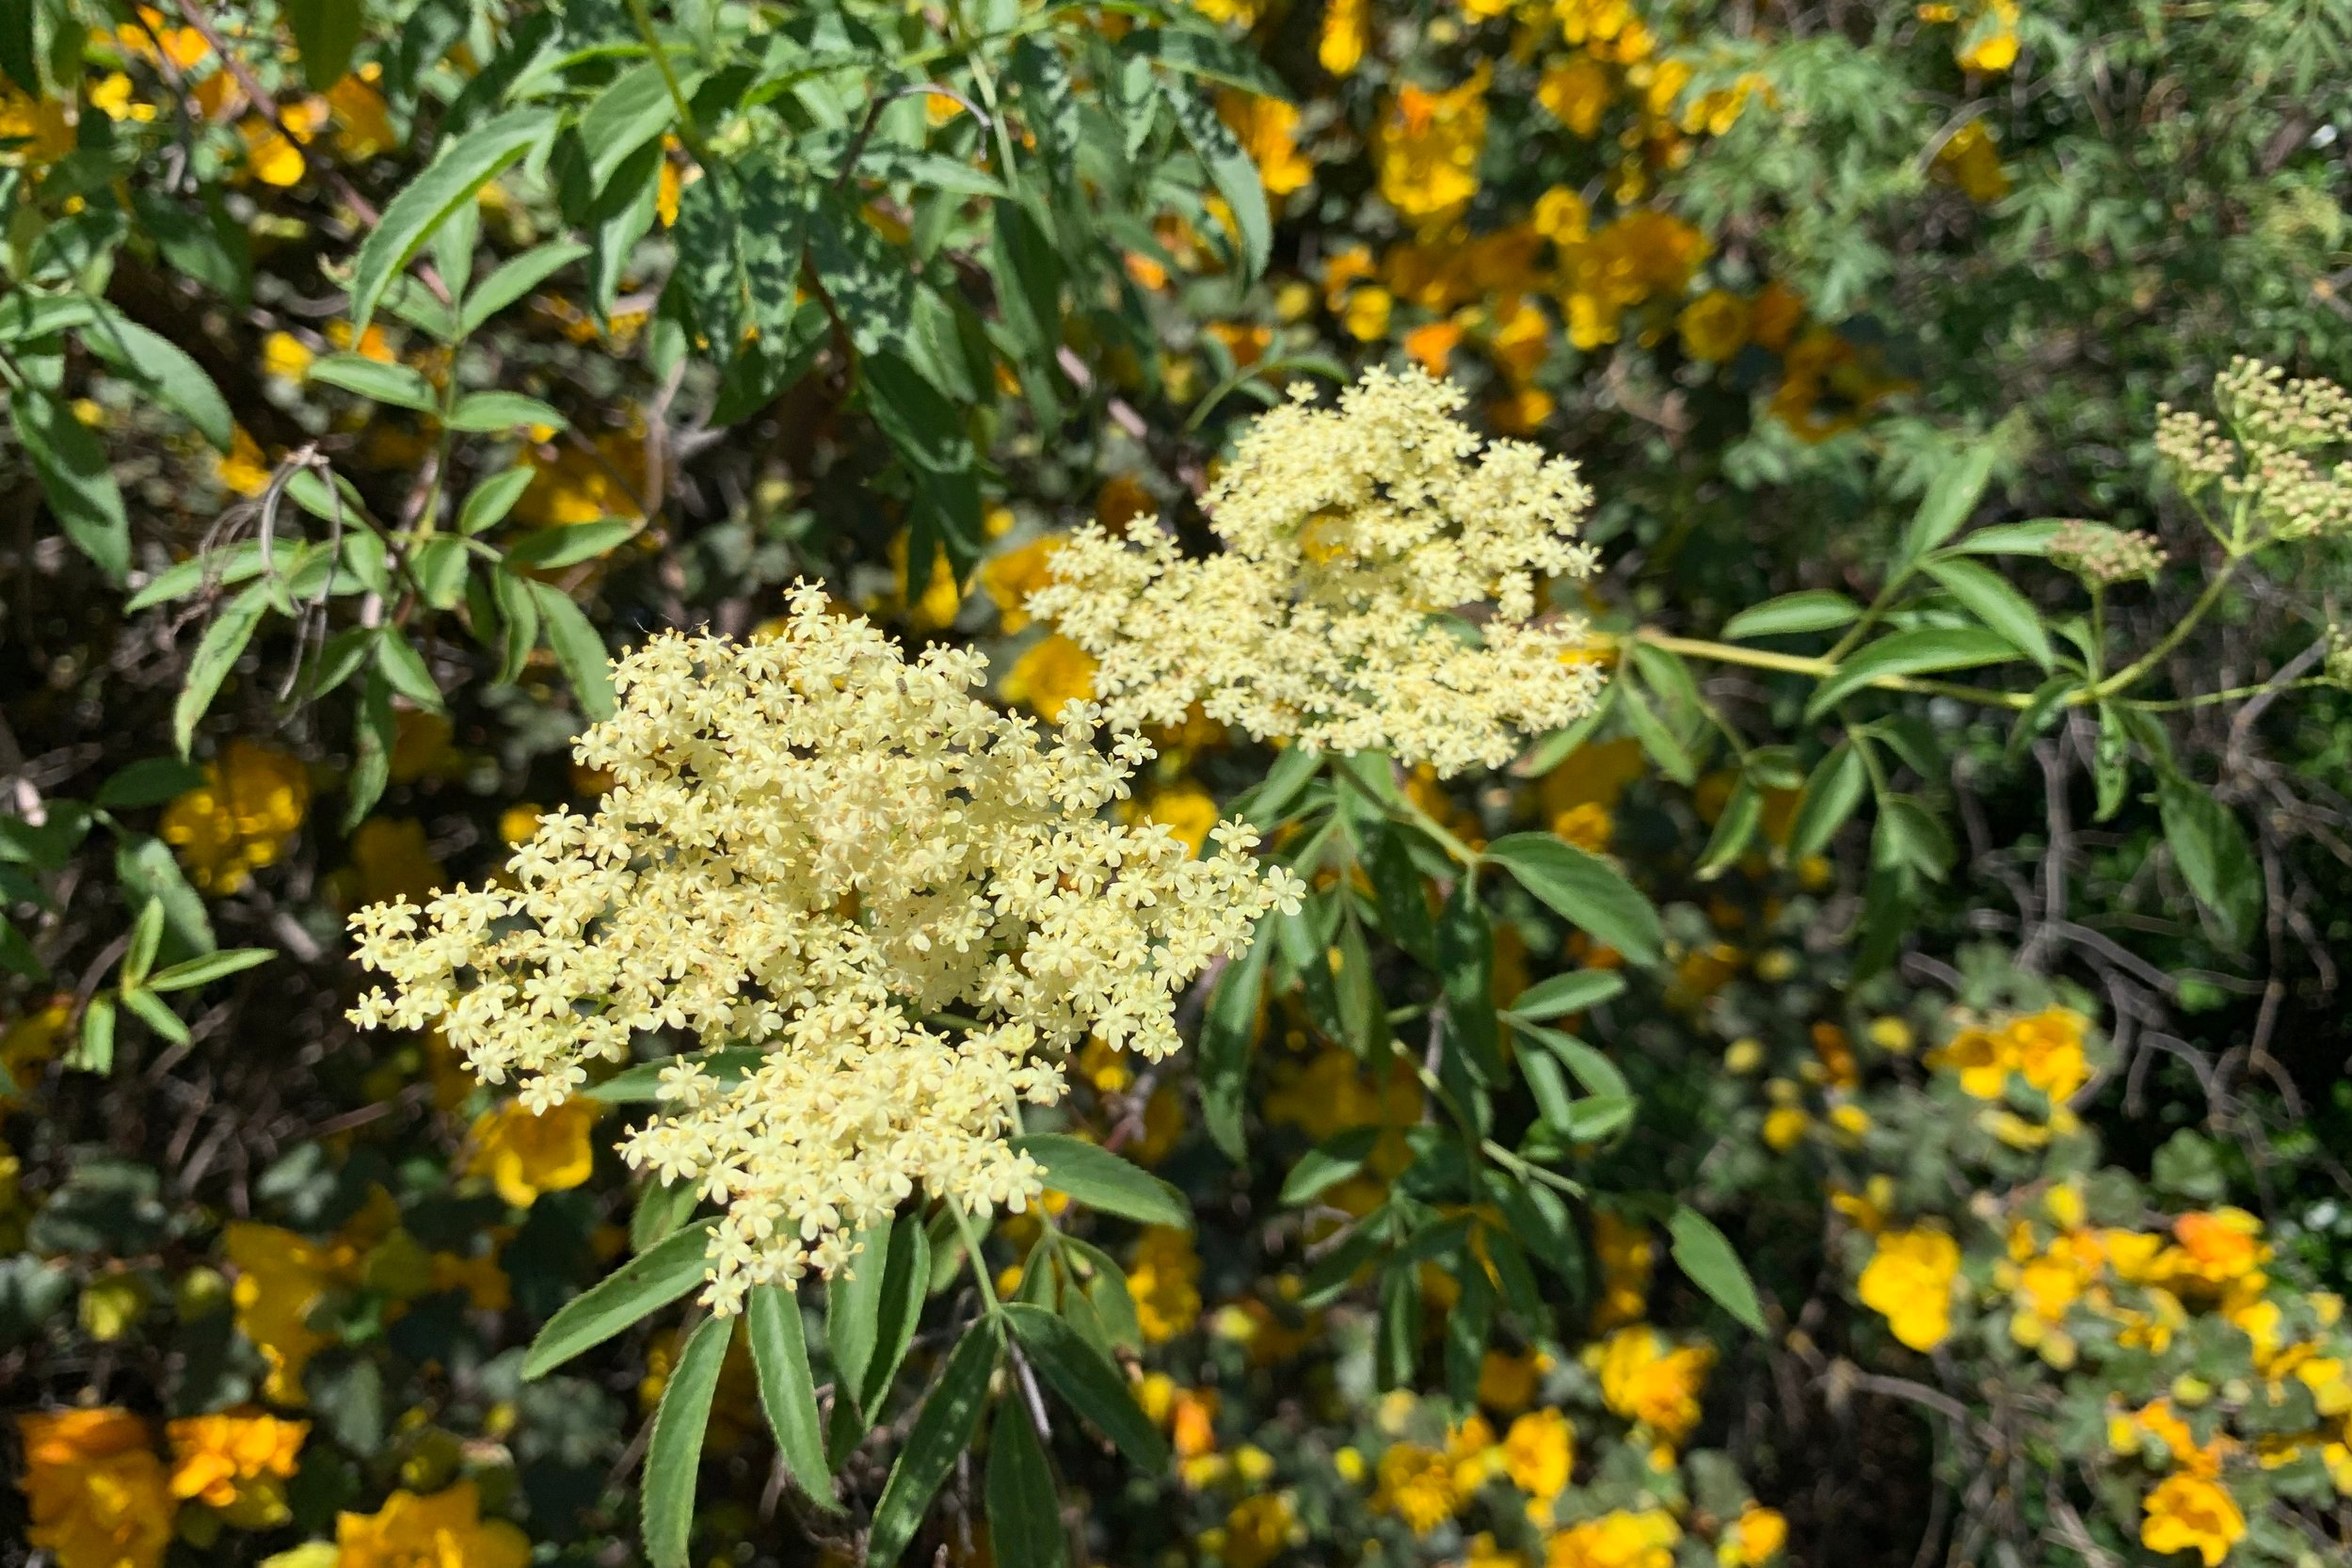 Elderberry+flower+with+Fremontodendron+2+%28AS%29.jpg